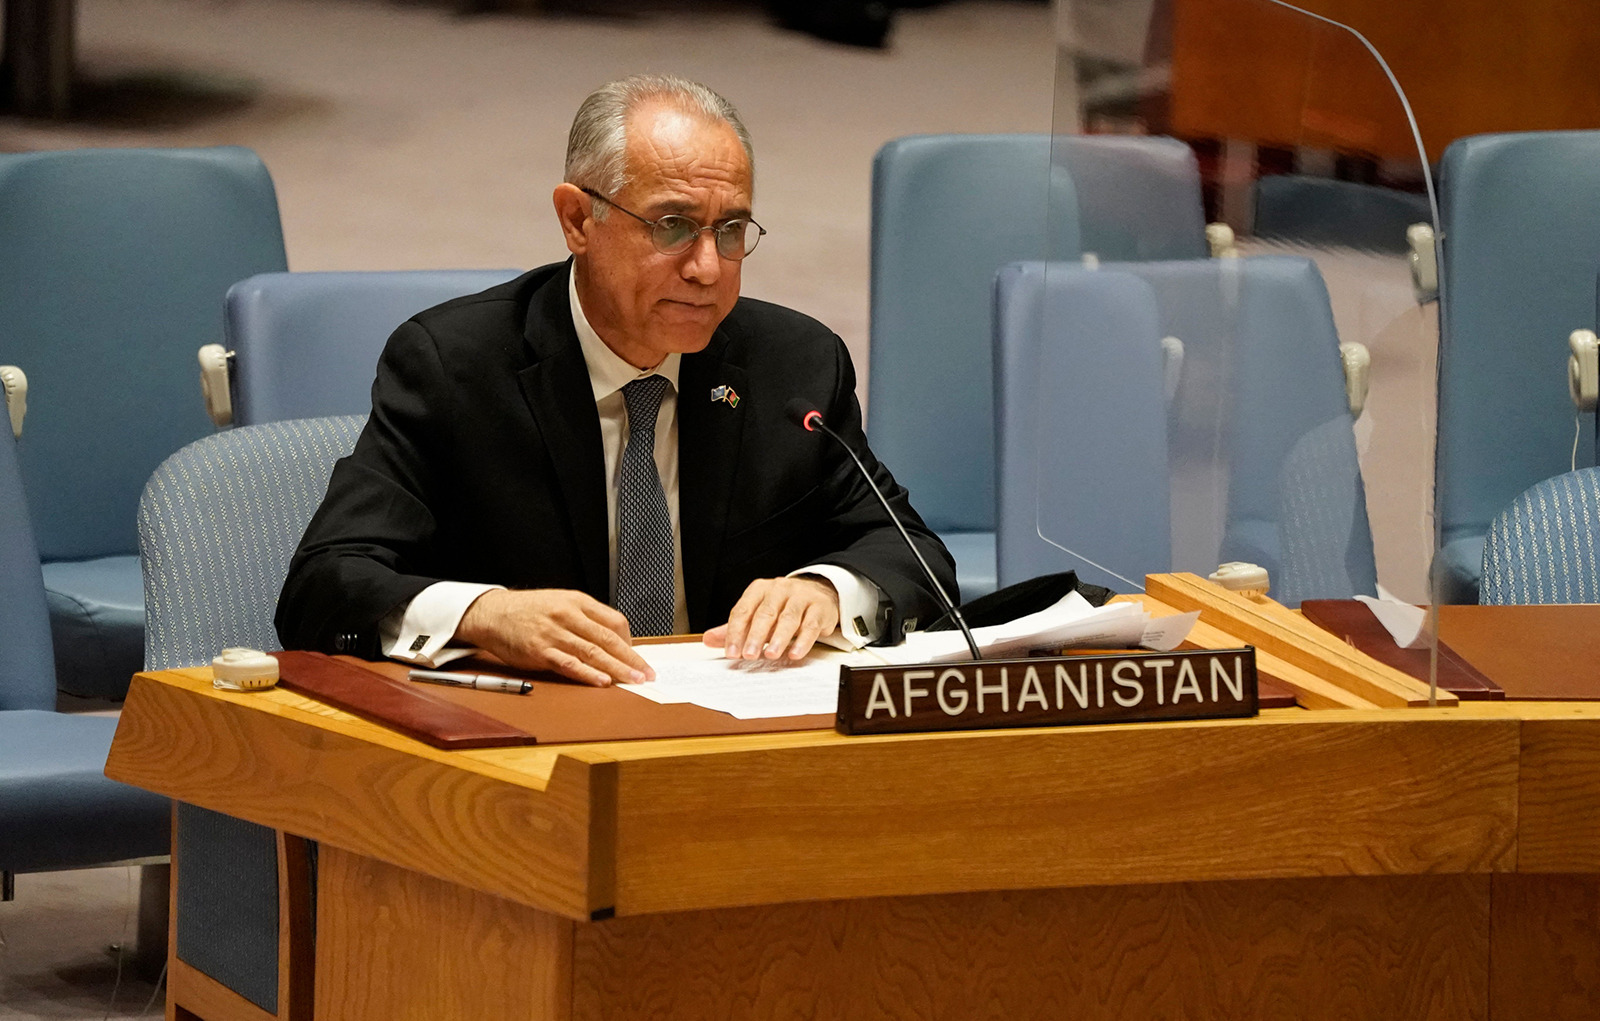 Permanent Representative of Afghanistan to the United Nations, Ghulam M. Isaczai speaks during a UN security council meeting on Afghanistan on August 16 at the United Nations in New York.